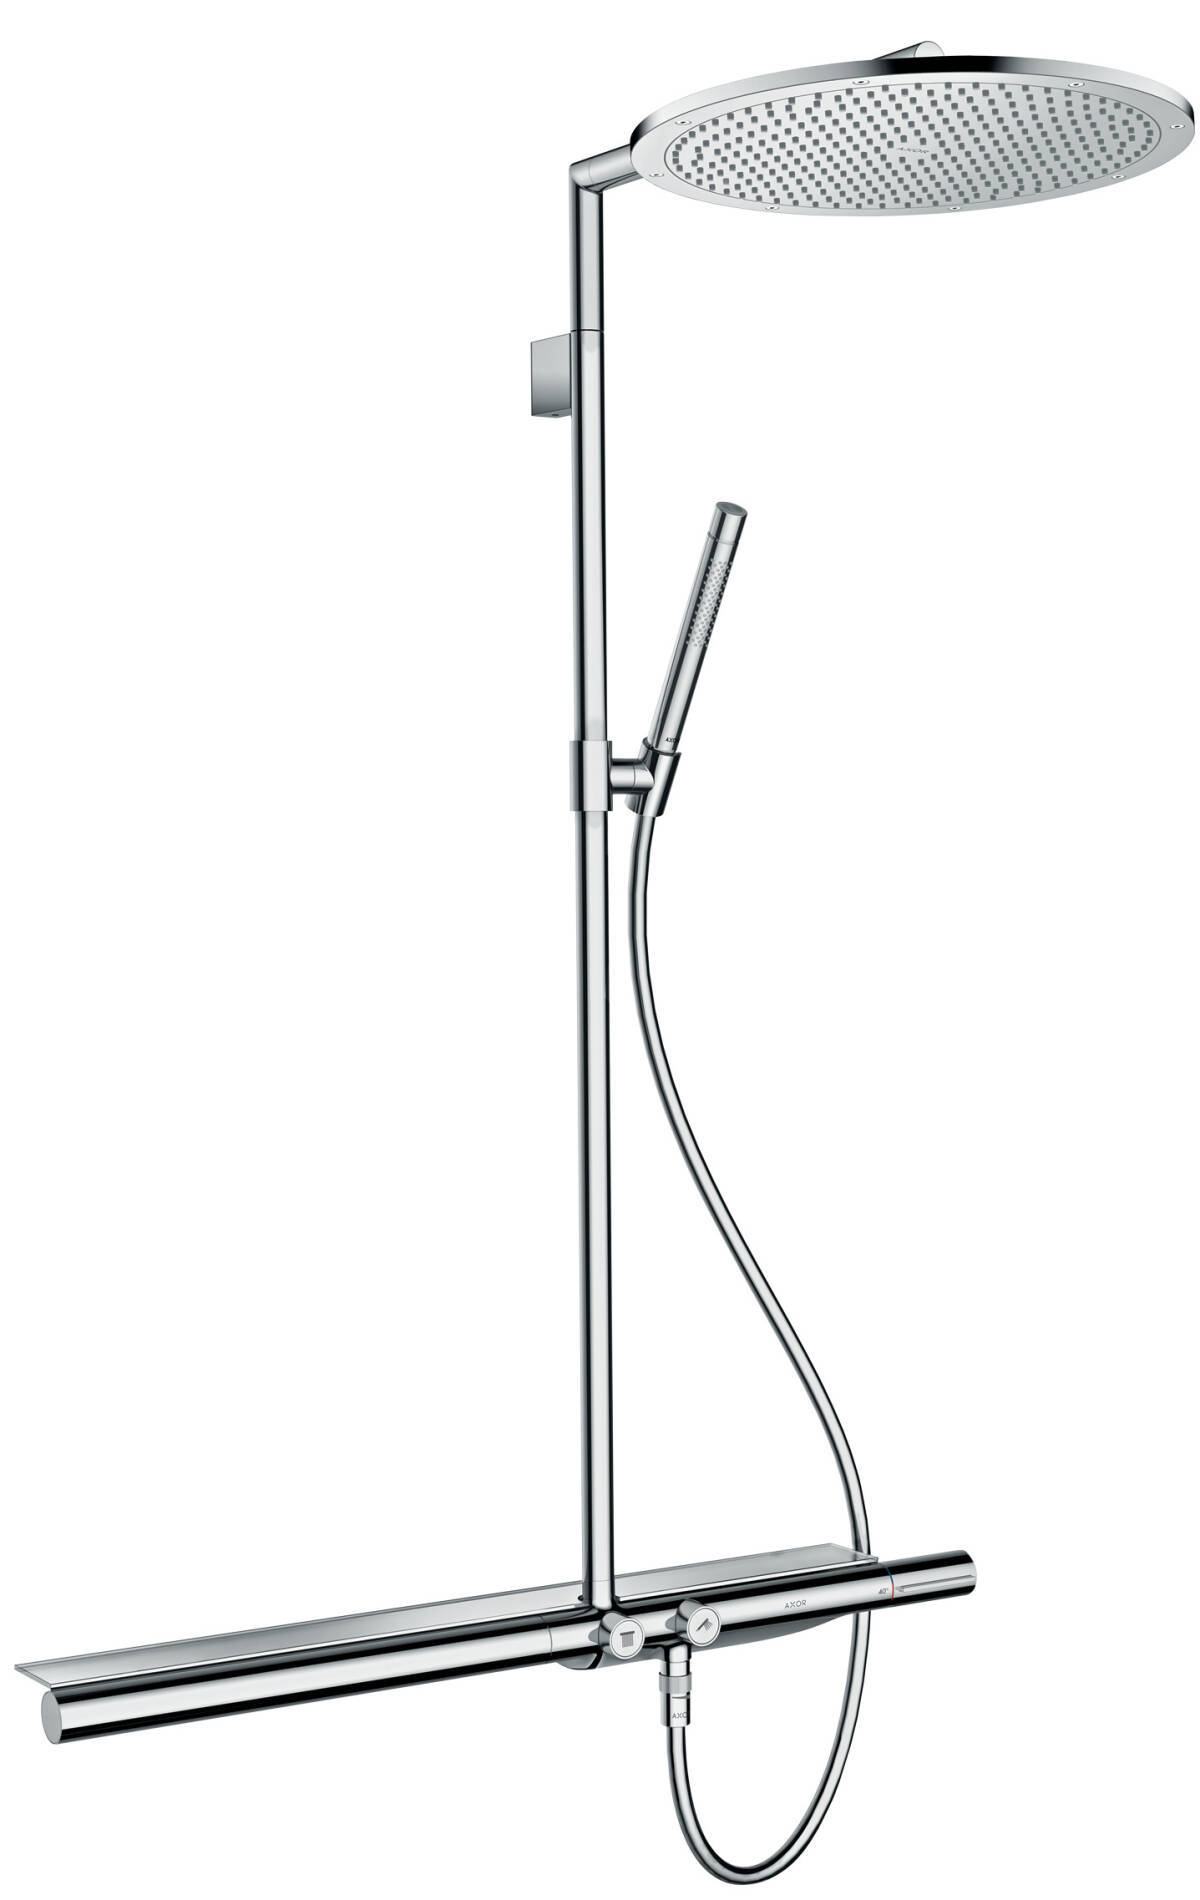 Showerpipe with thermostat 800 and overhead shower 350 1jet, Chrome, 27984000